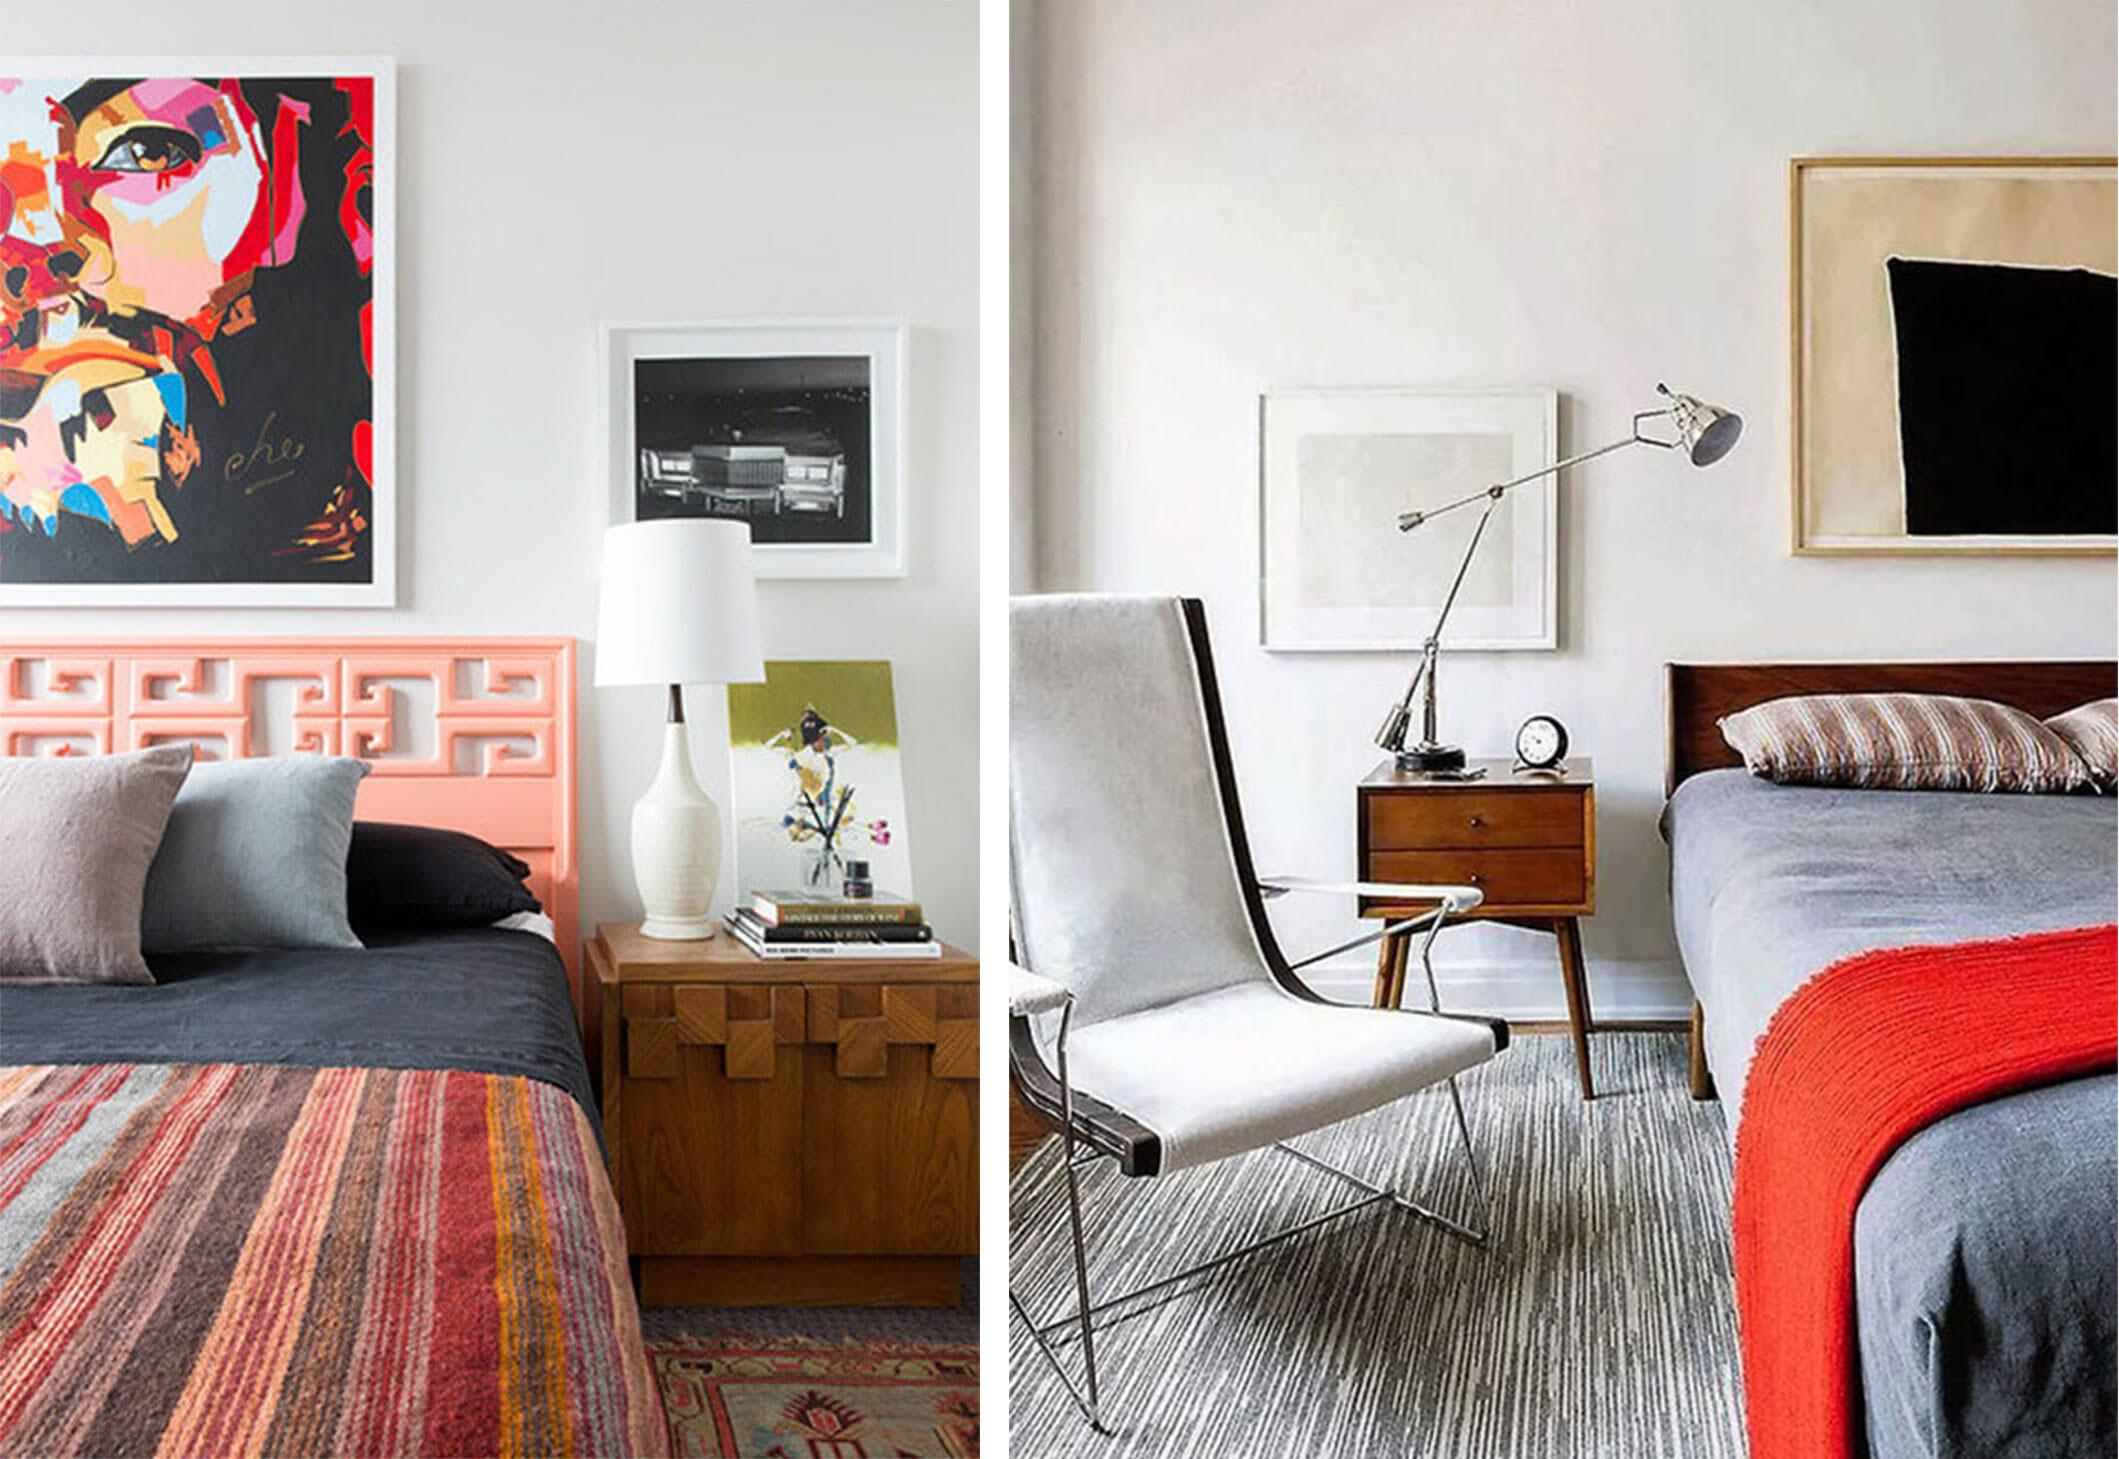 Mid-century bedroom with a coral headboard and patterned quilt